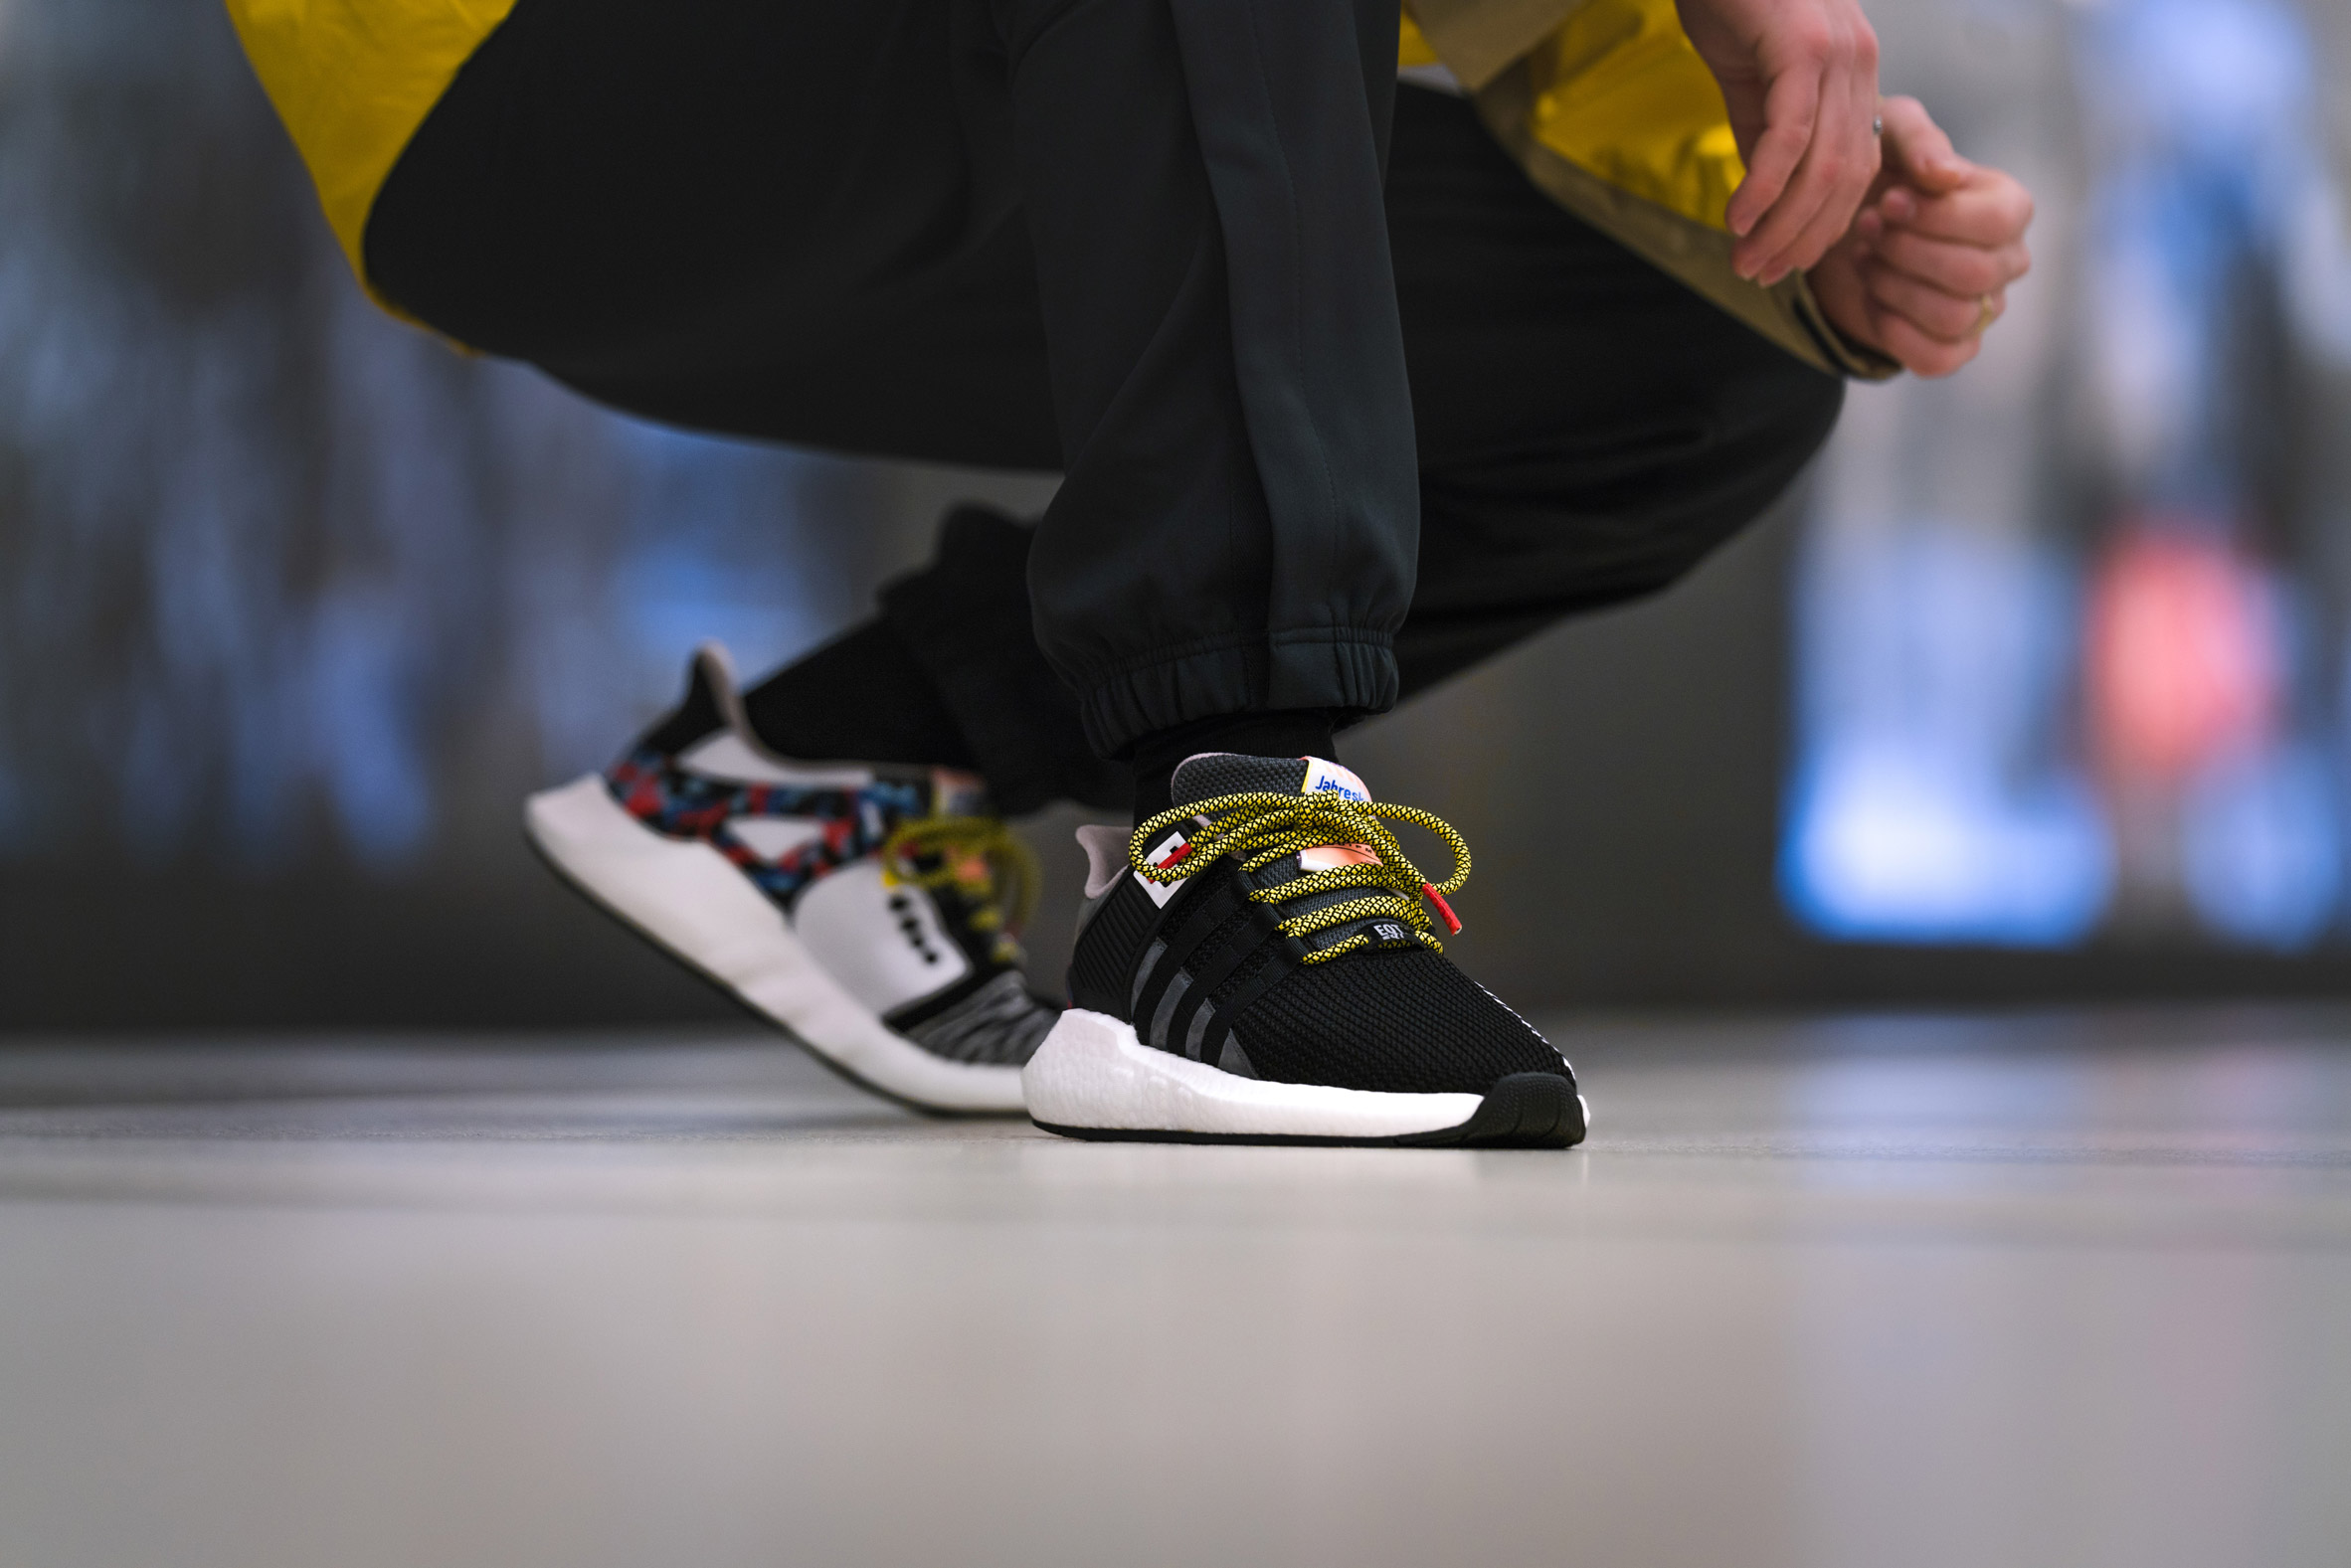 comprar bien lindos zapatos nueva llegada Adidas releases limited-edition trainers that match Berlin subway ...